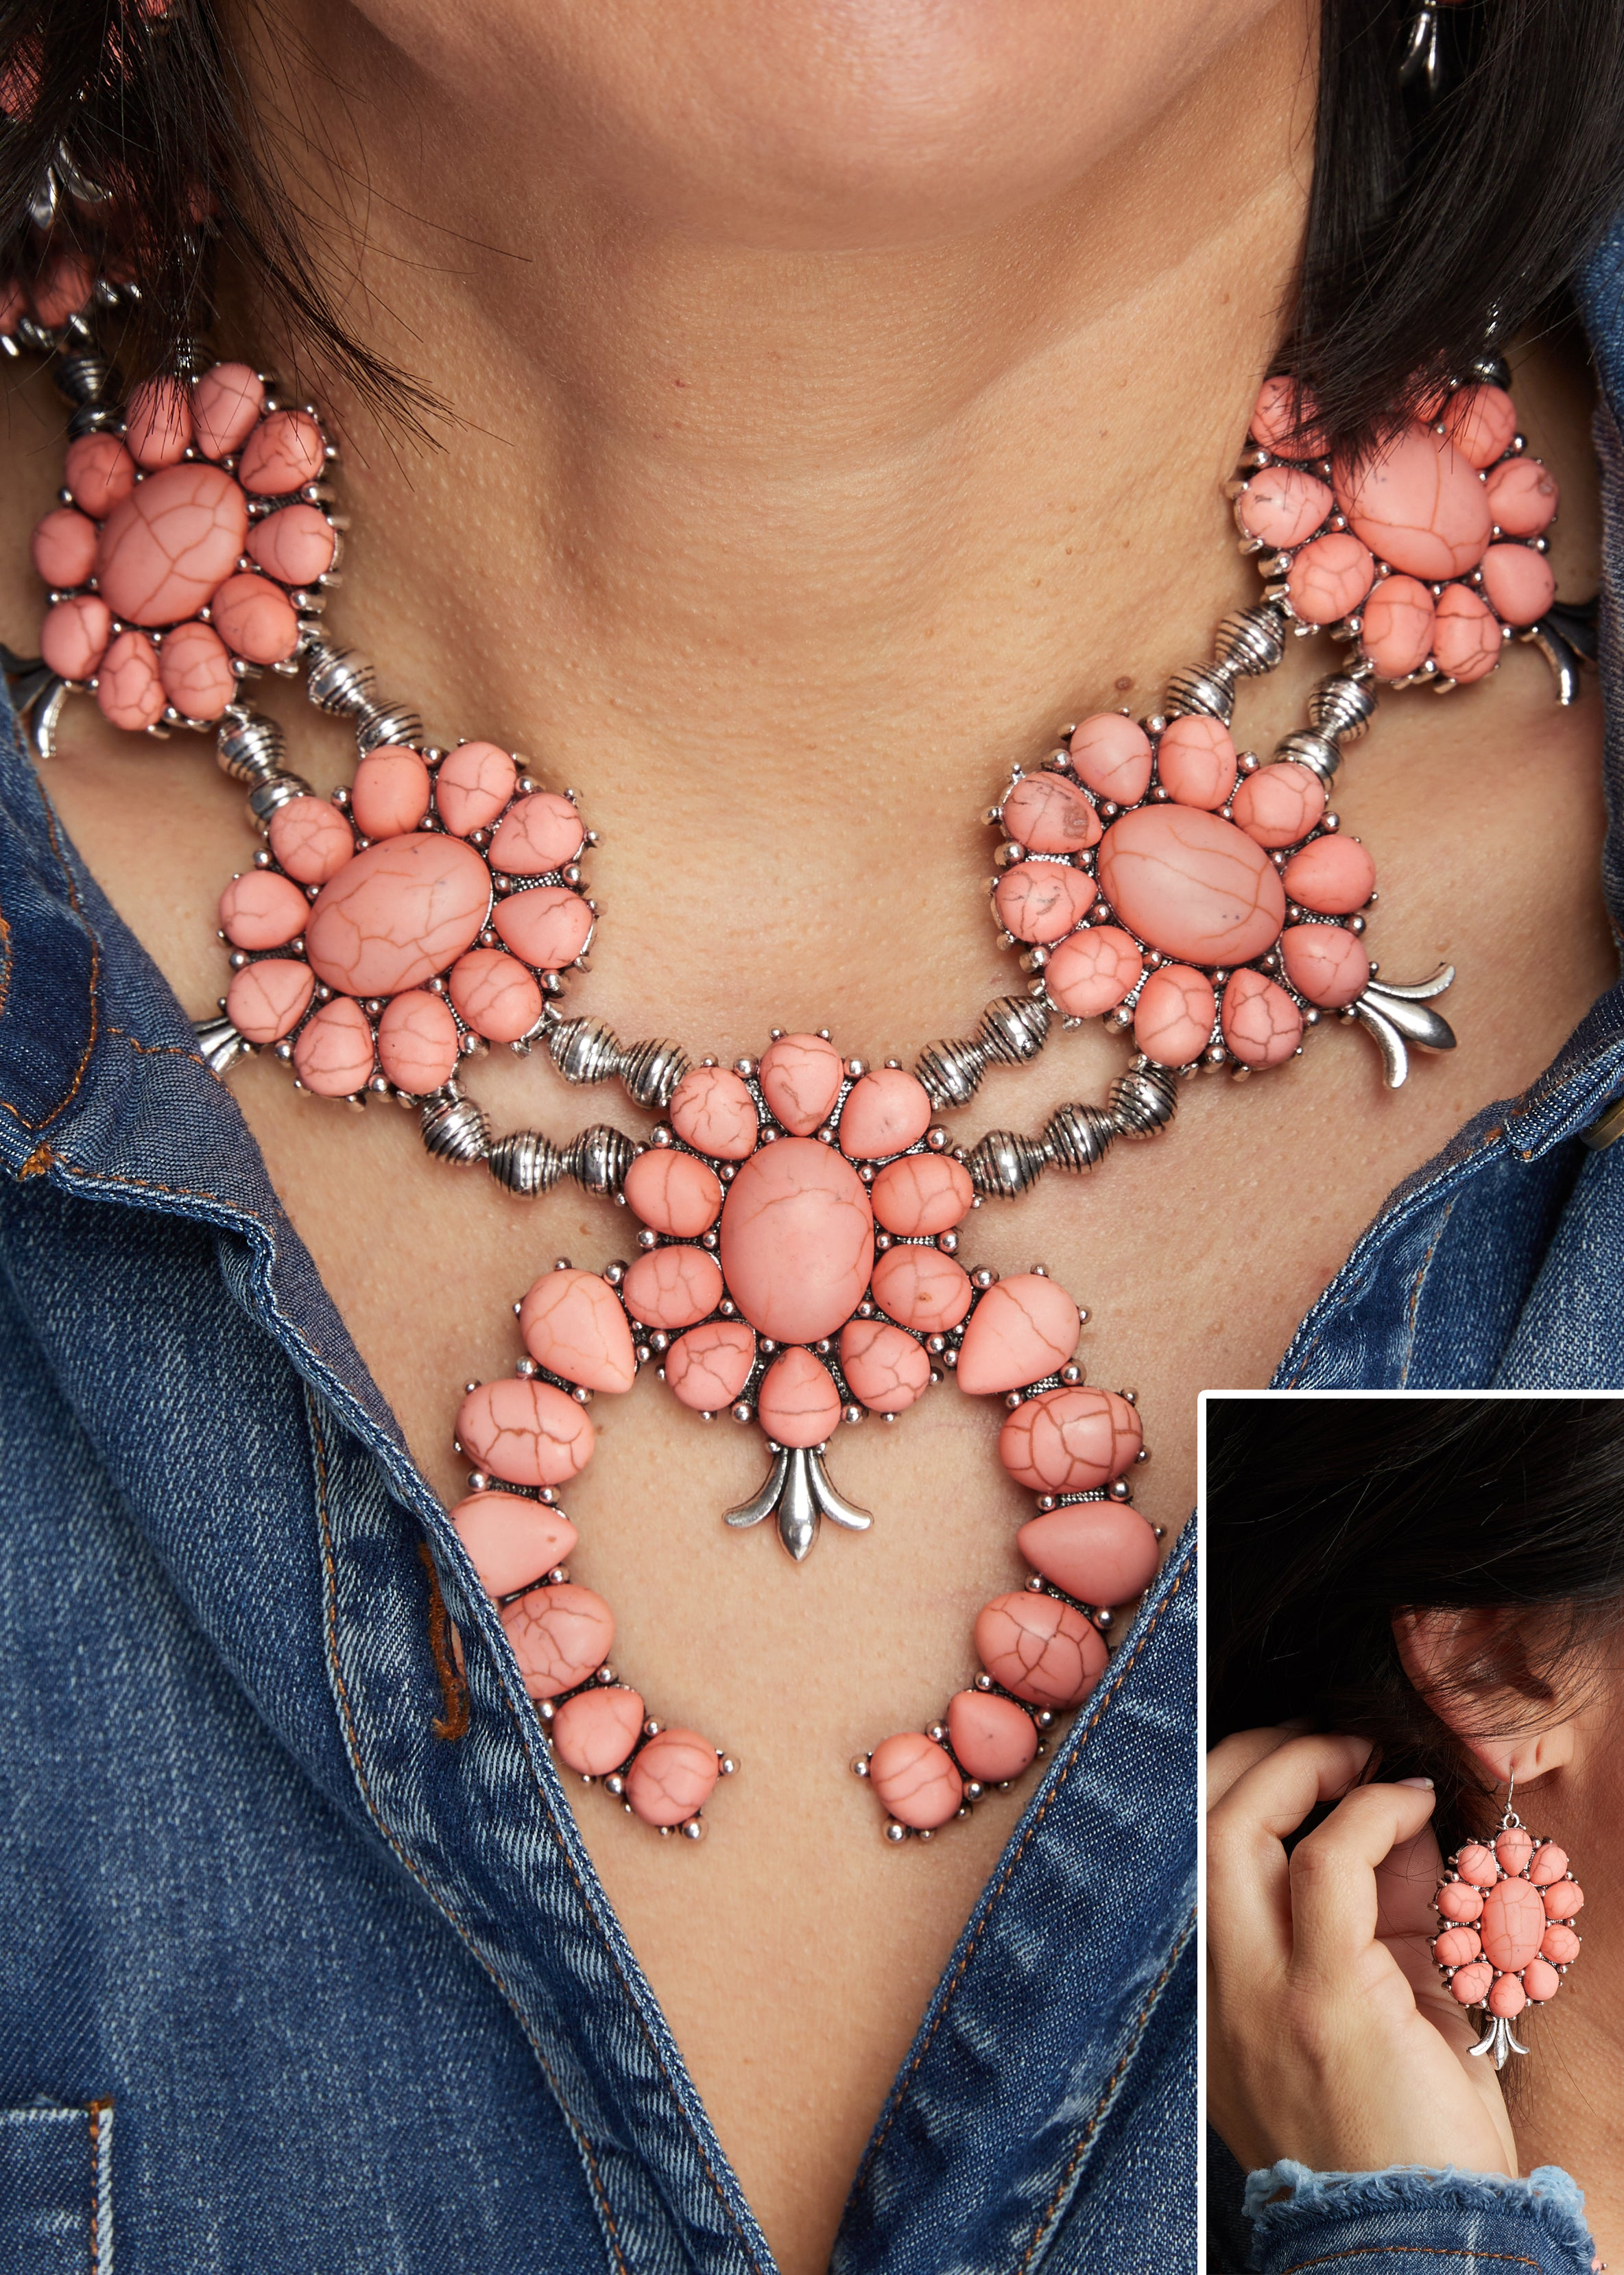 Pink Squash Blossom Necklace w/Earrings